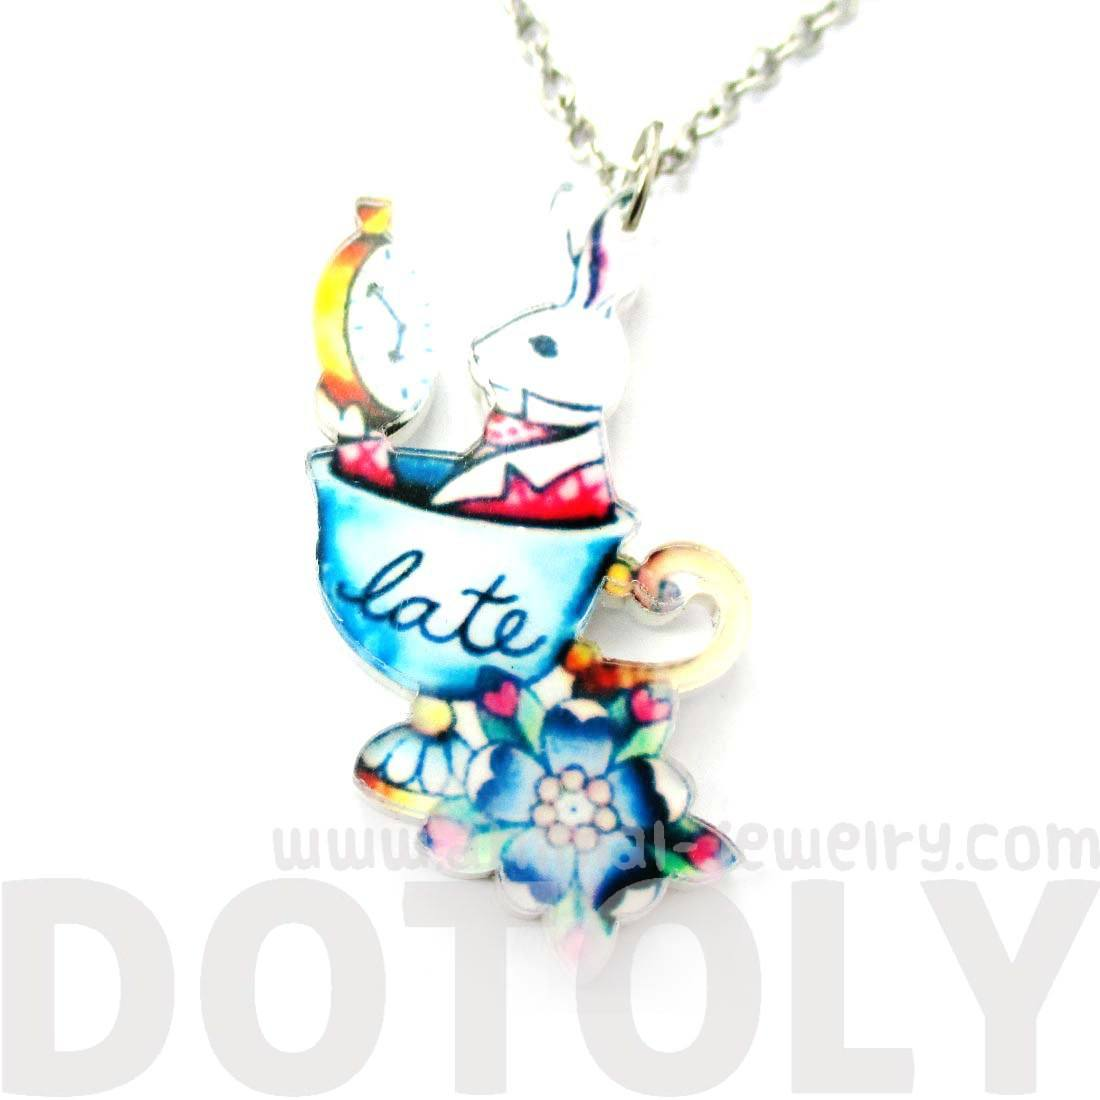 alice-in-wonderland-bunny-rabbit-in-a-teacup-shaped-acrylic-illustrated-pendant-necklace